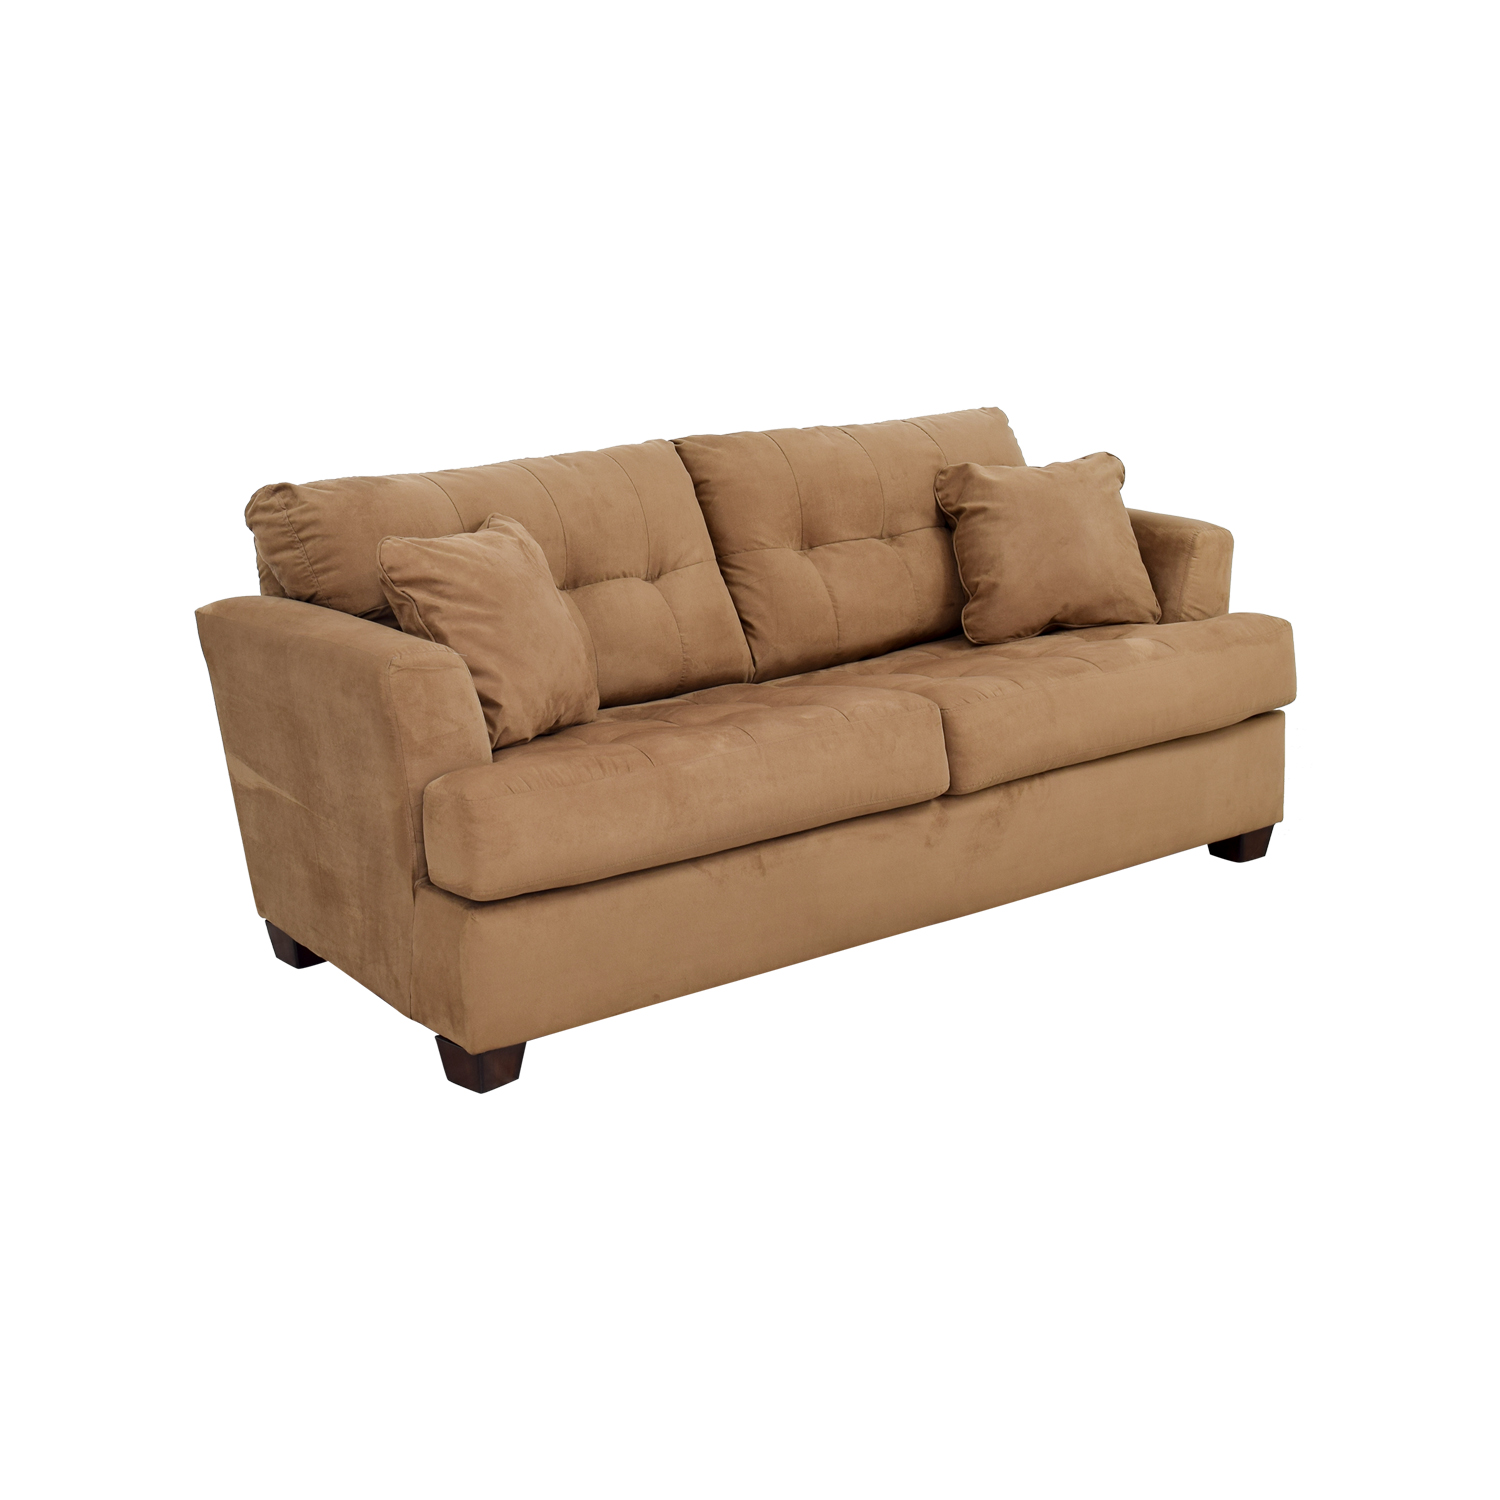 70 Off Ashley Furniture Ashley Furniture Tan Microfiber